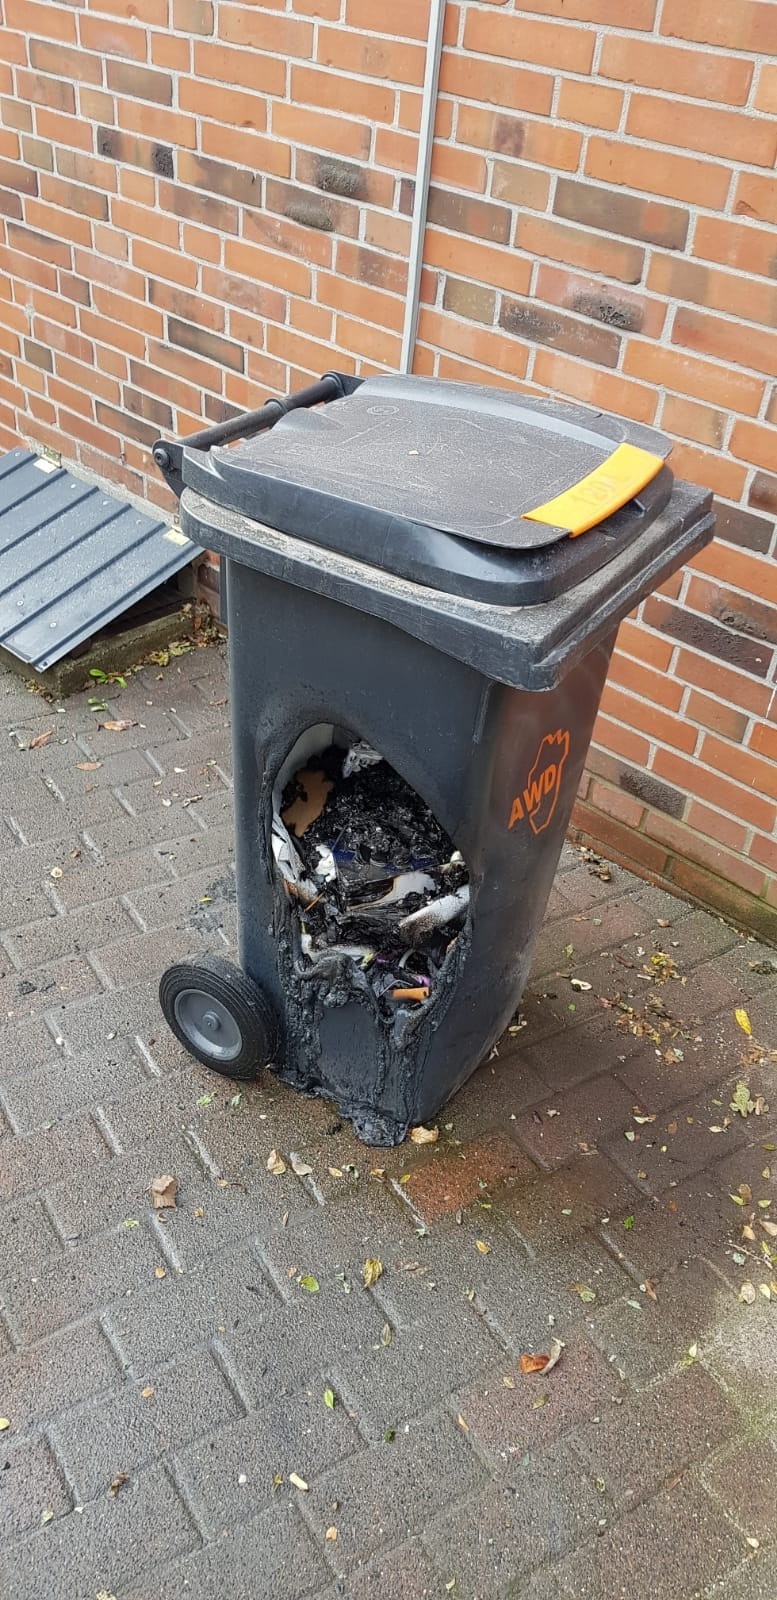 A neighbor destroyed a trashcan by dumping hot charcoal in it.